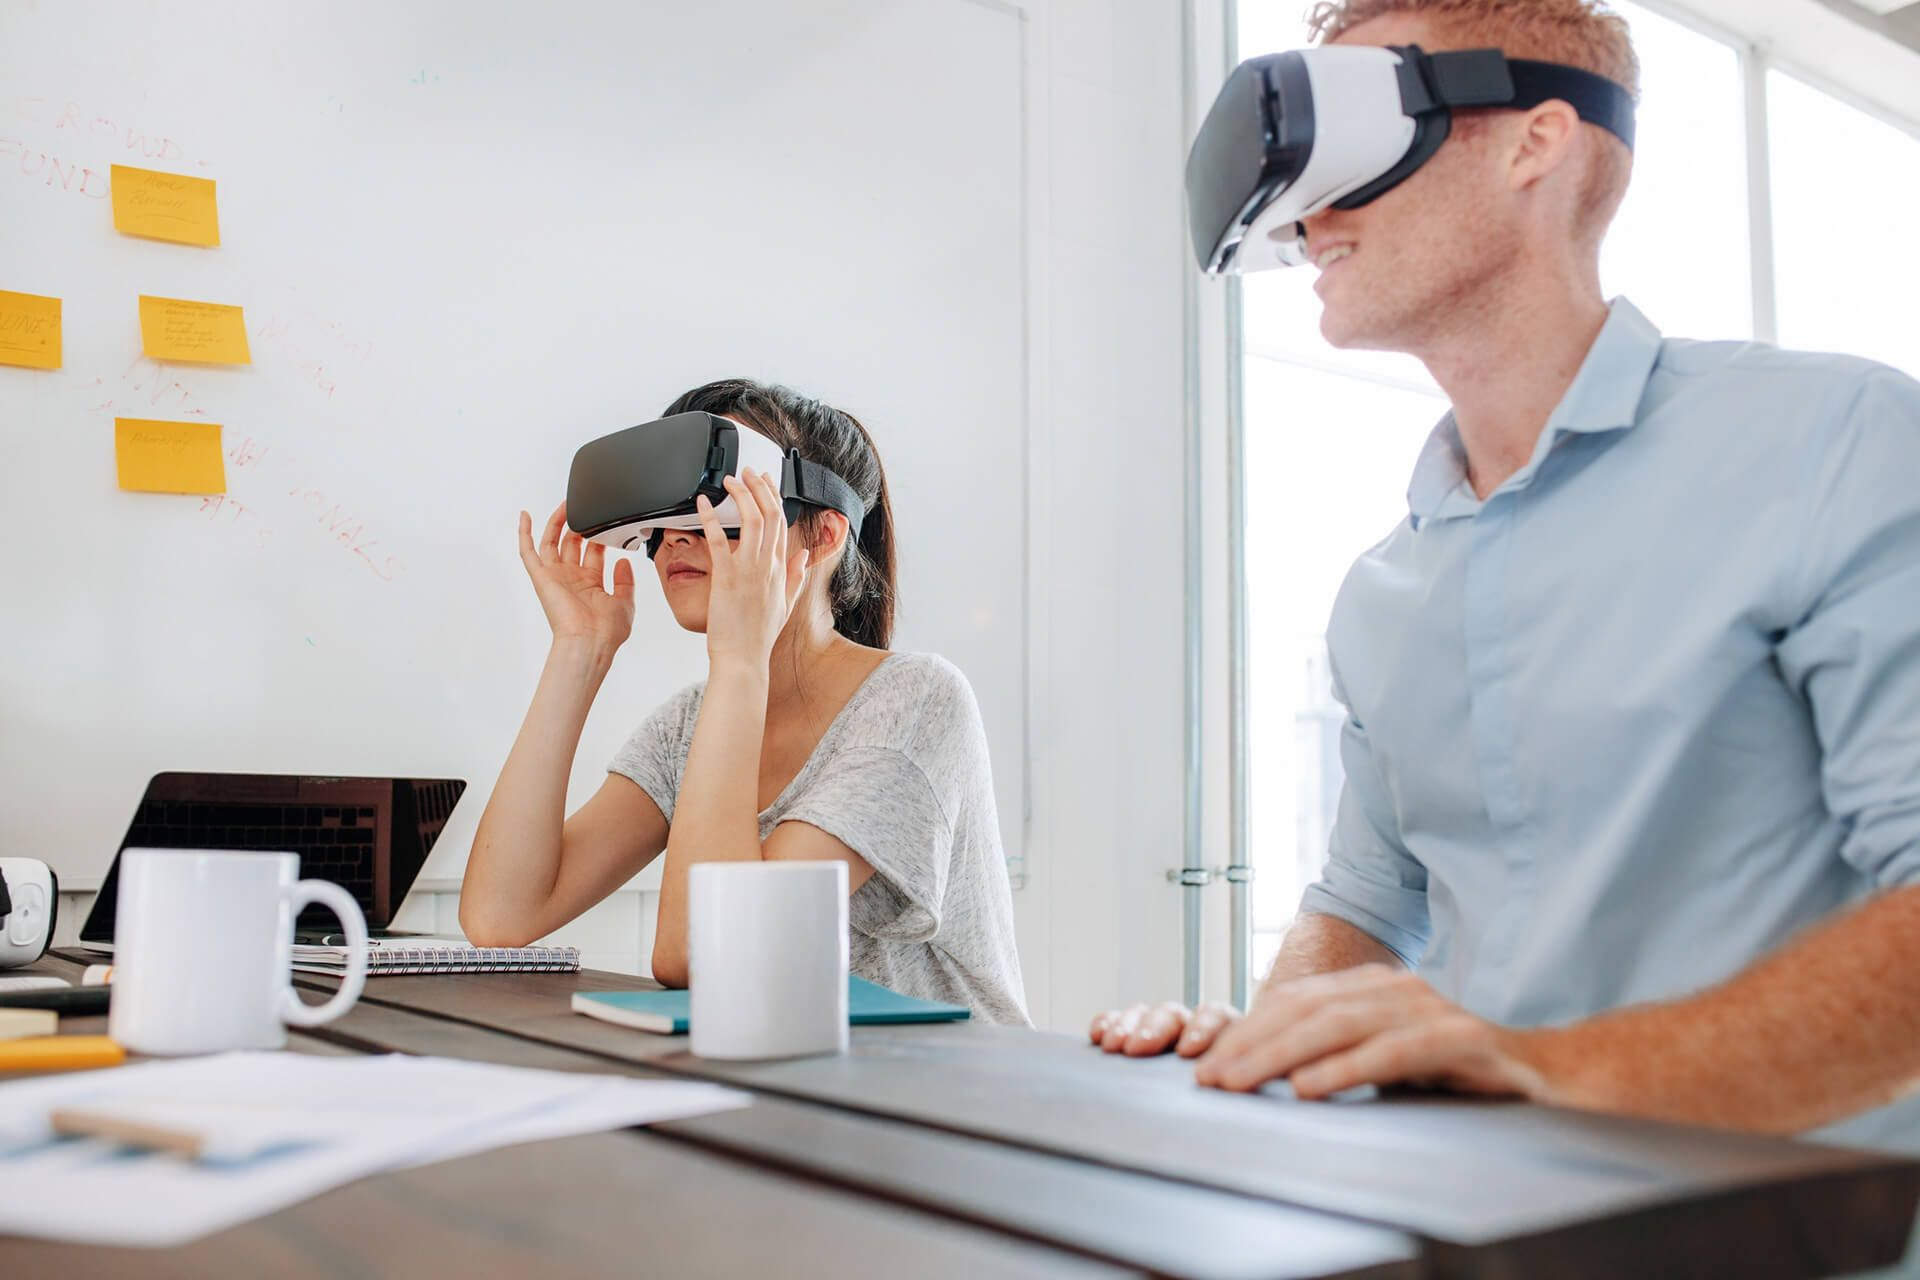 VR Supporting Learning